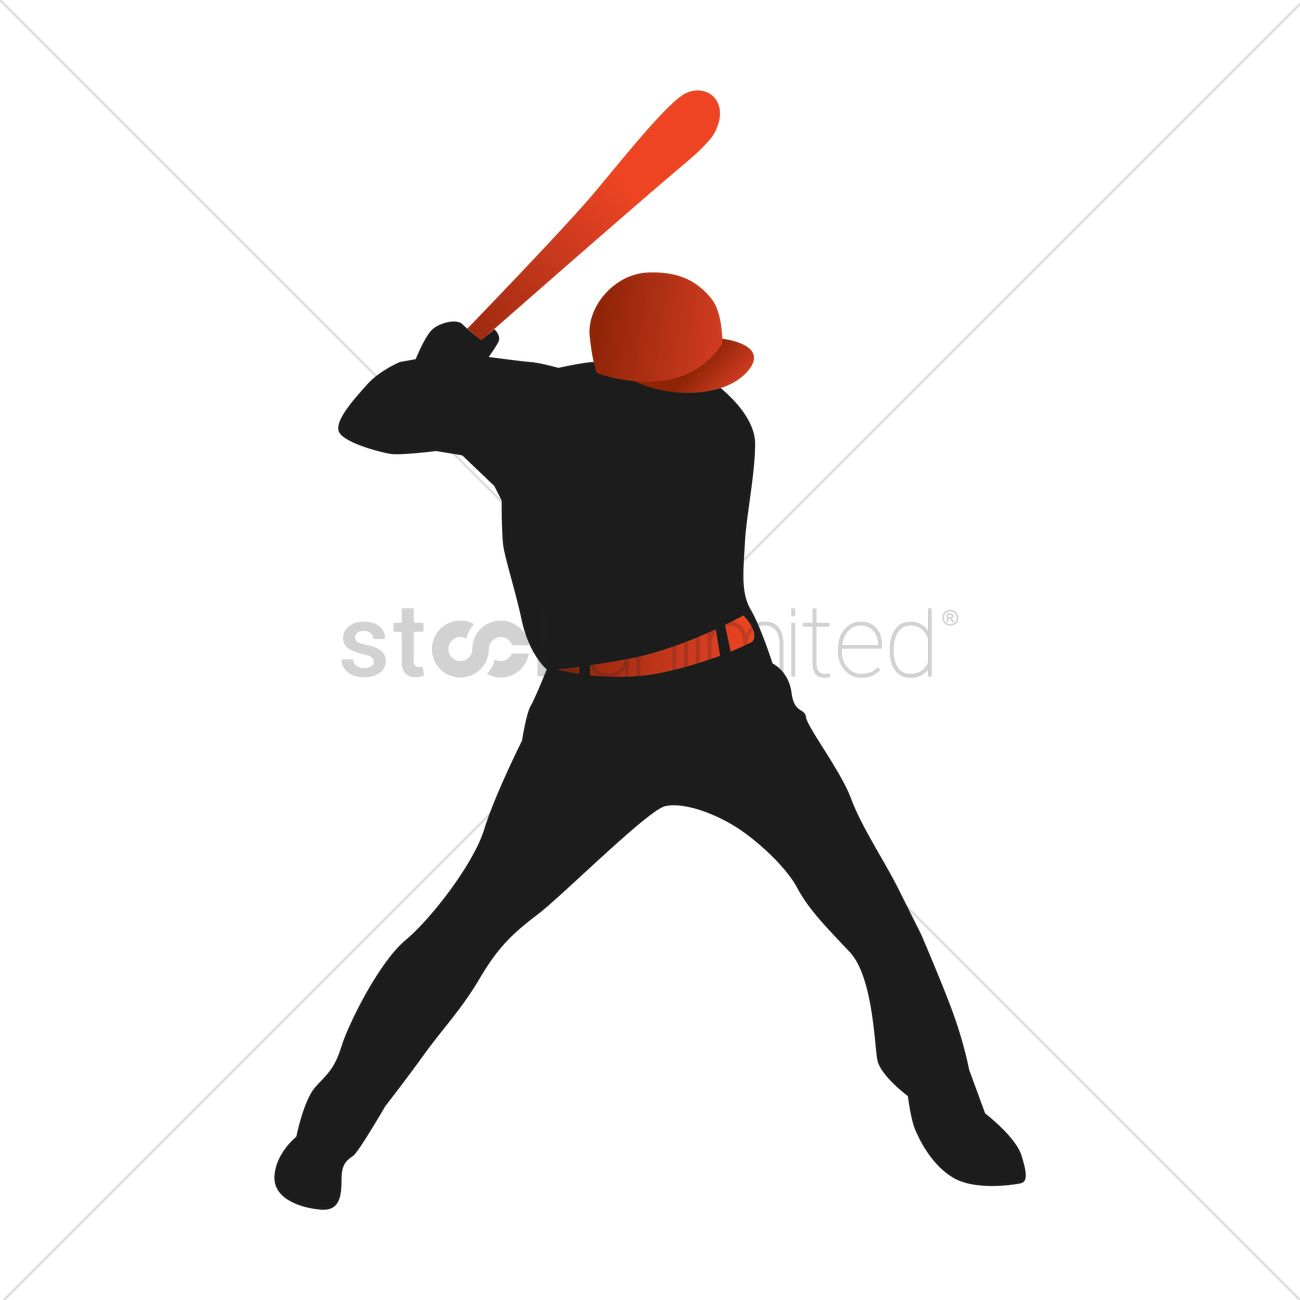 free silhouette of baseball player vector image 1530855 rh stockunlimited com basketball player vectors baseball player vector art